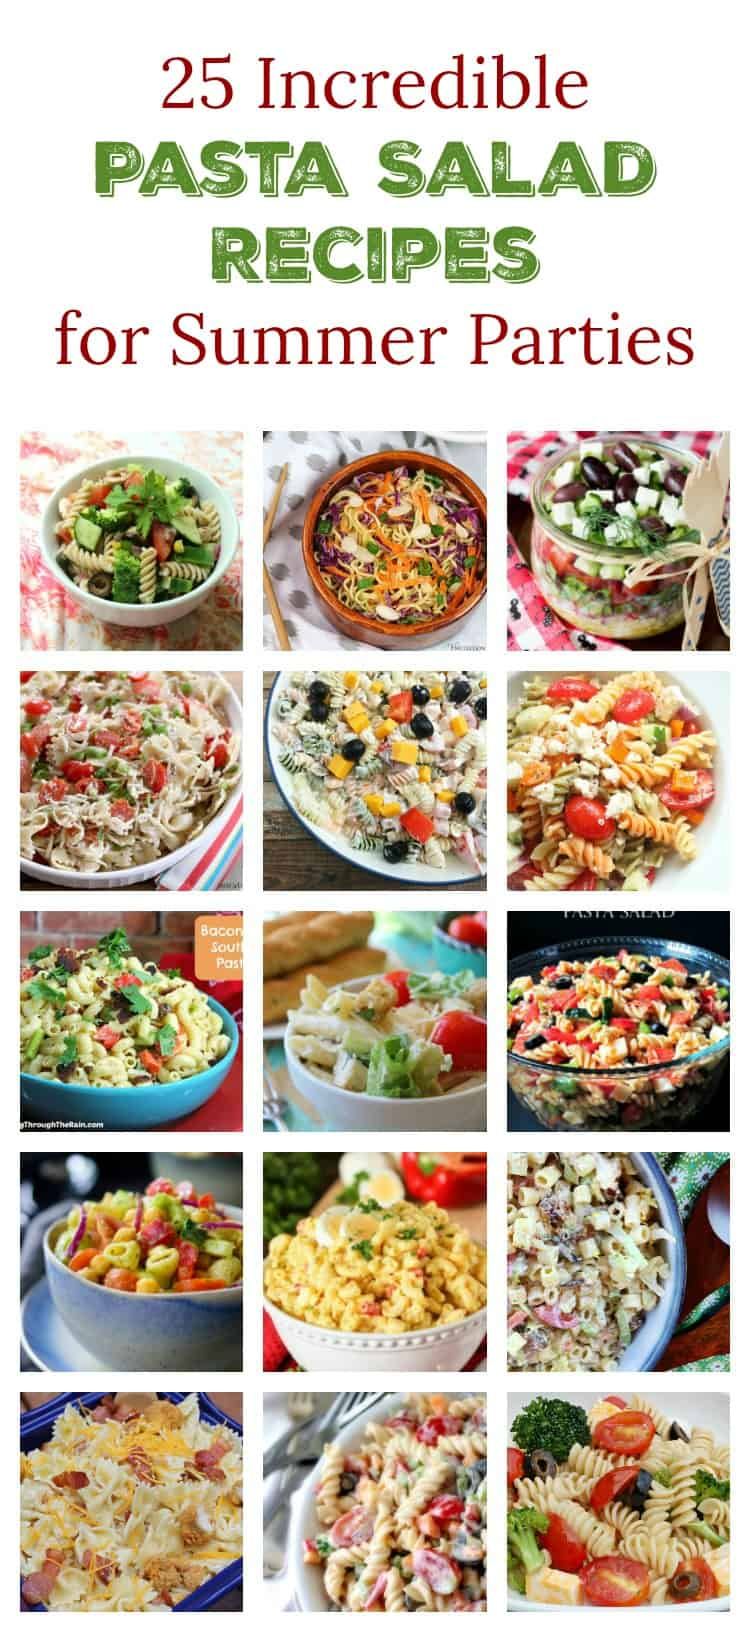 Pasta salad just screams summer party, doesn\'t it? I\'m loving these 25 perfect pasta salad recipes! I can\'t wait to try them all during my backyard BBQs!